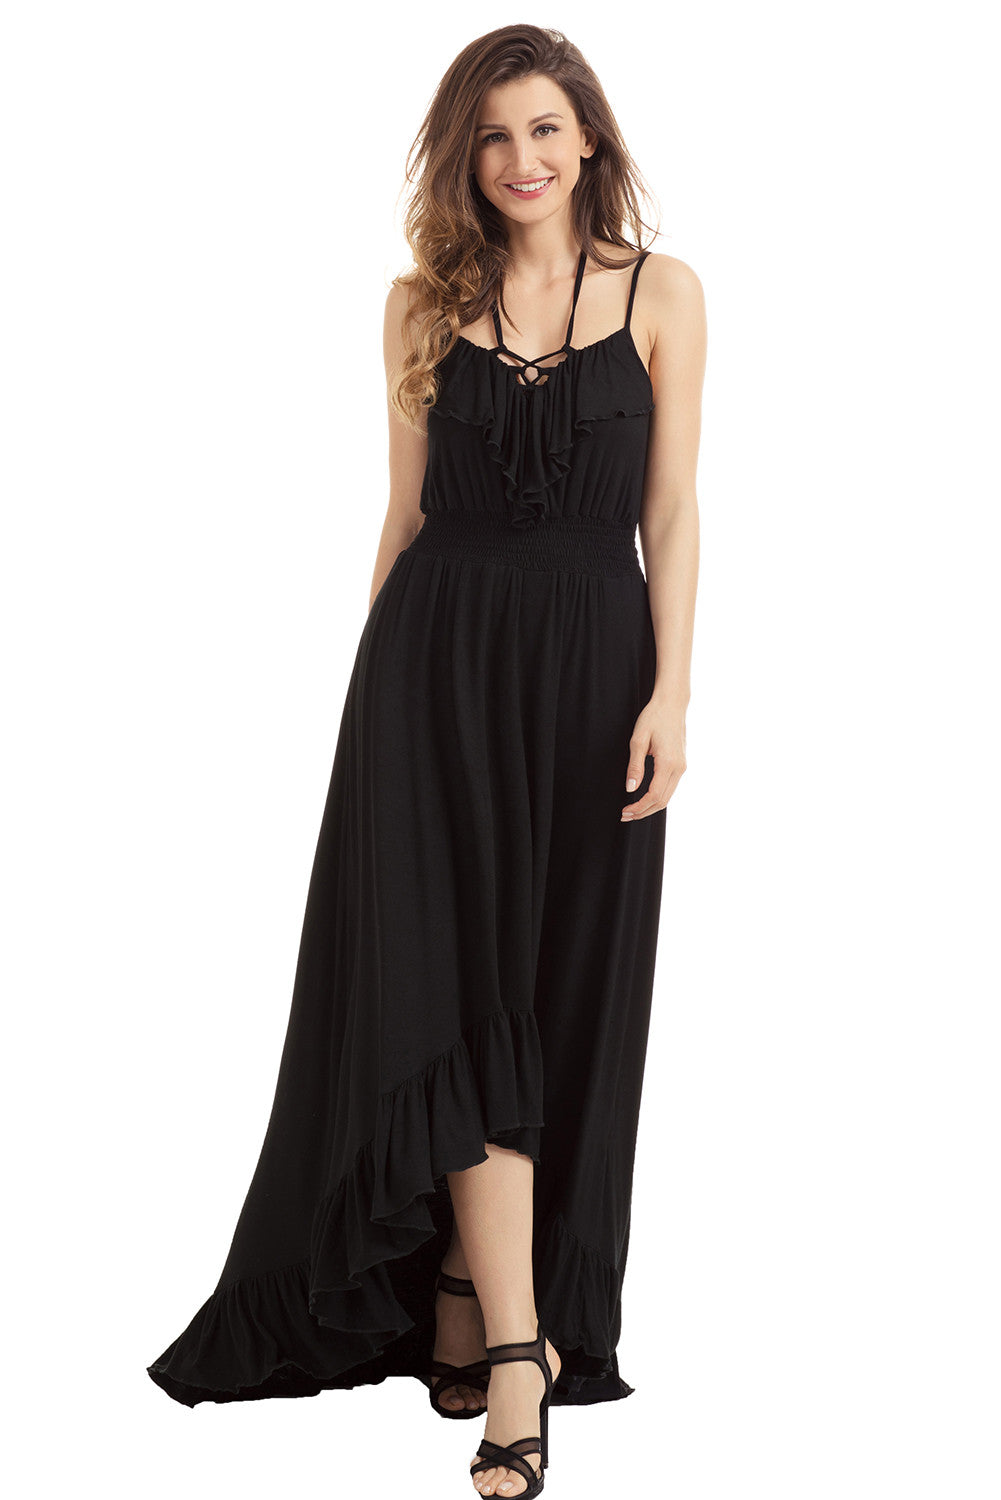 Black Lace Up V Neck Ruffle Trim Hi-Low Maxi Dress LAVELIQ